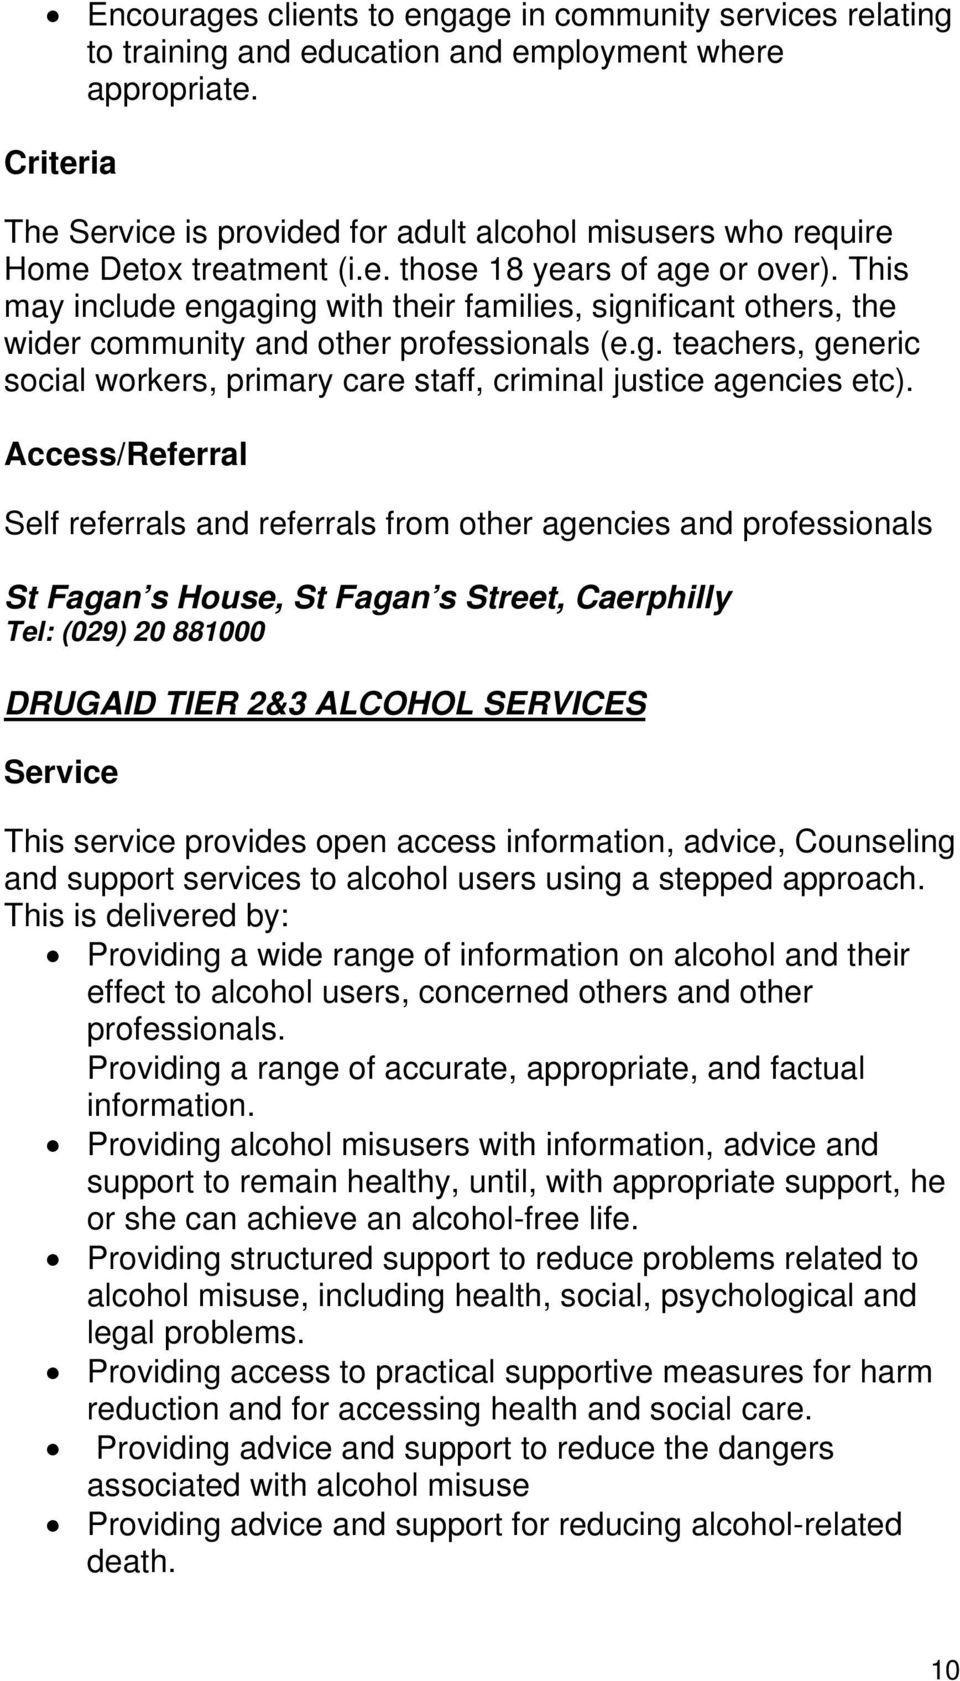 Access/Referral Self referrals and referrals from other agencies and professionals St Fagan s House, St Fagan s Street, Caerphilly Tel: (029) 20 881000 DRUGAID TIER 2&3 ALCOHOL SERVICES This service